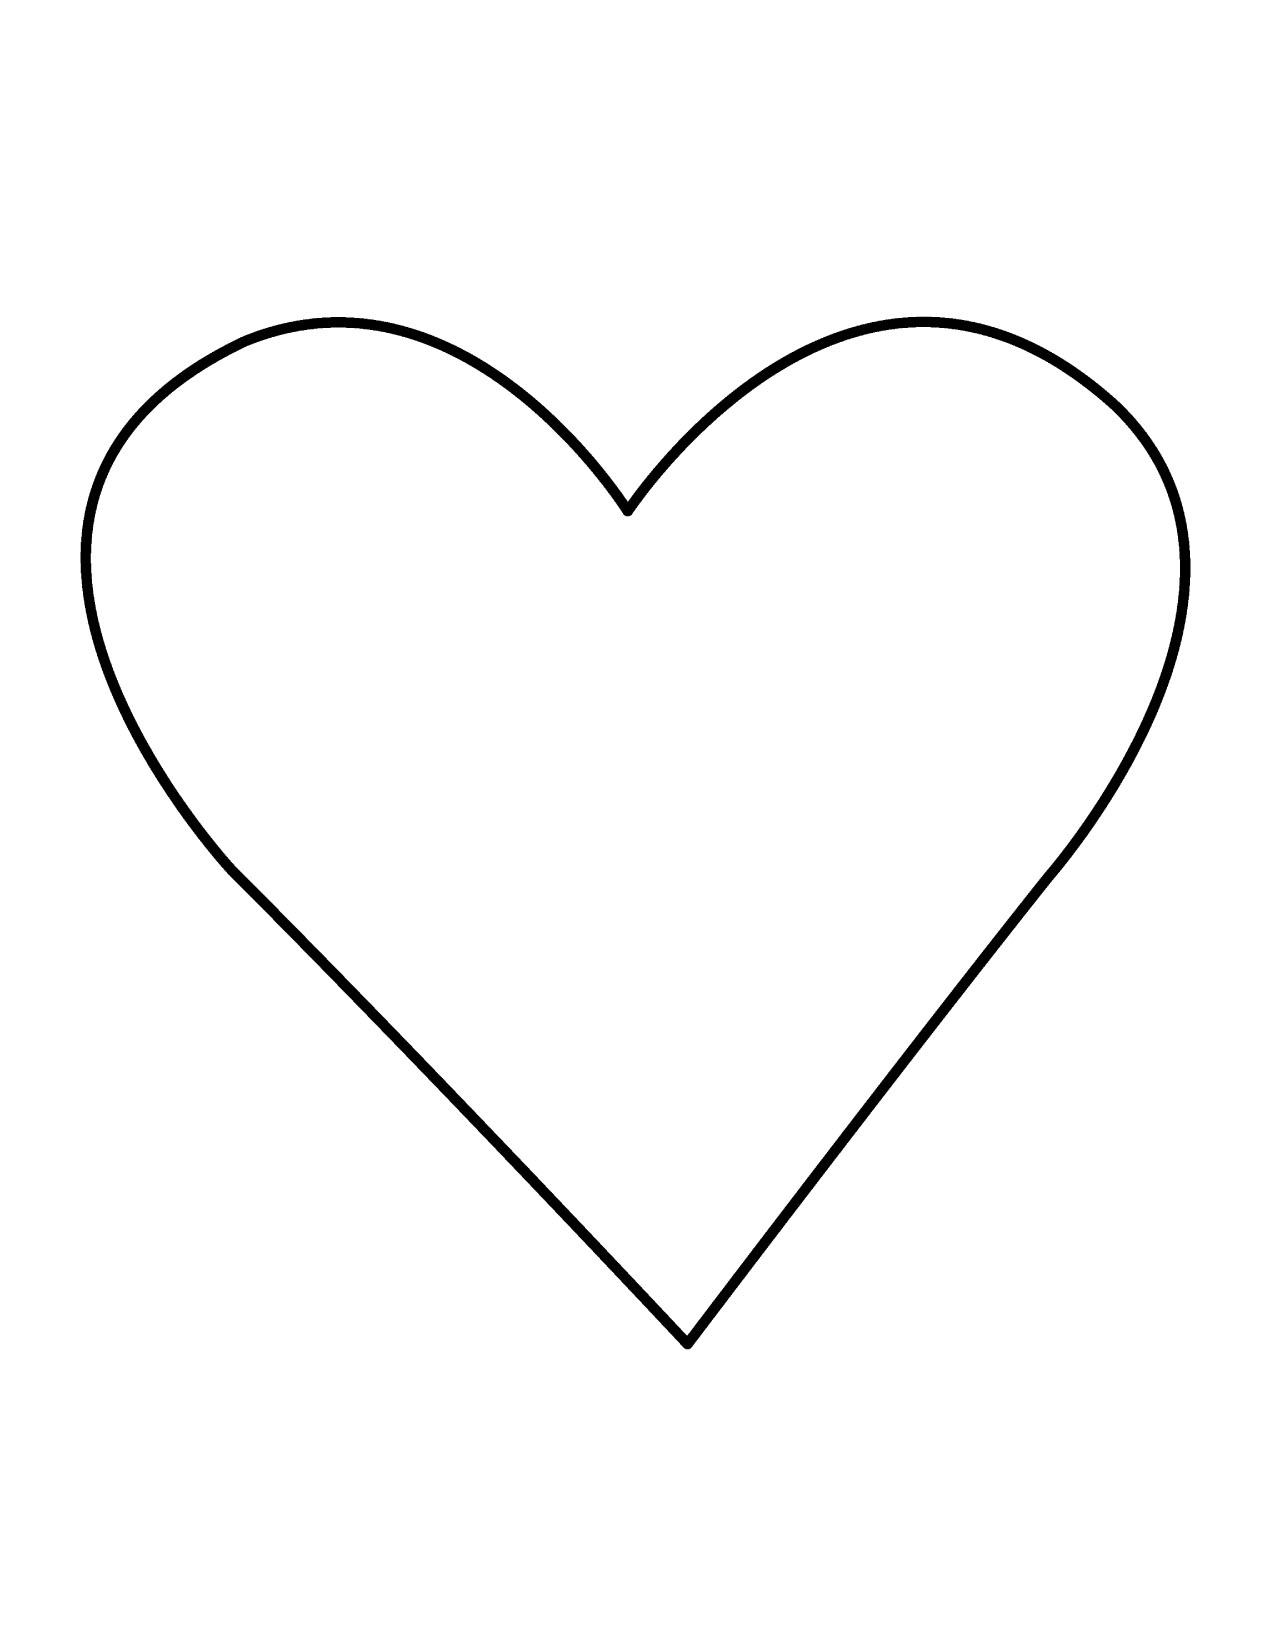 Heart black and white heart black and white heart clipart hearts 4 4